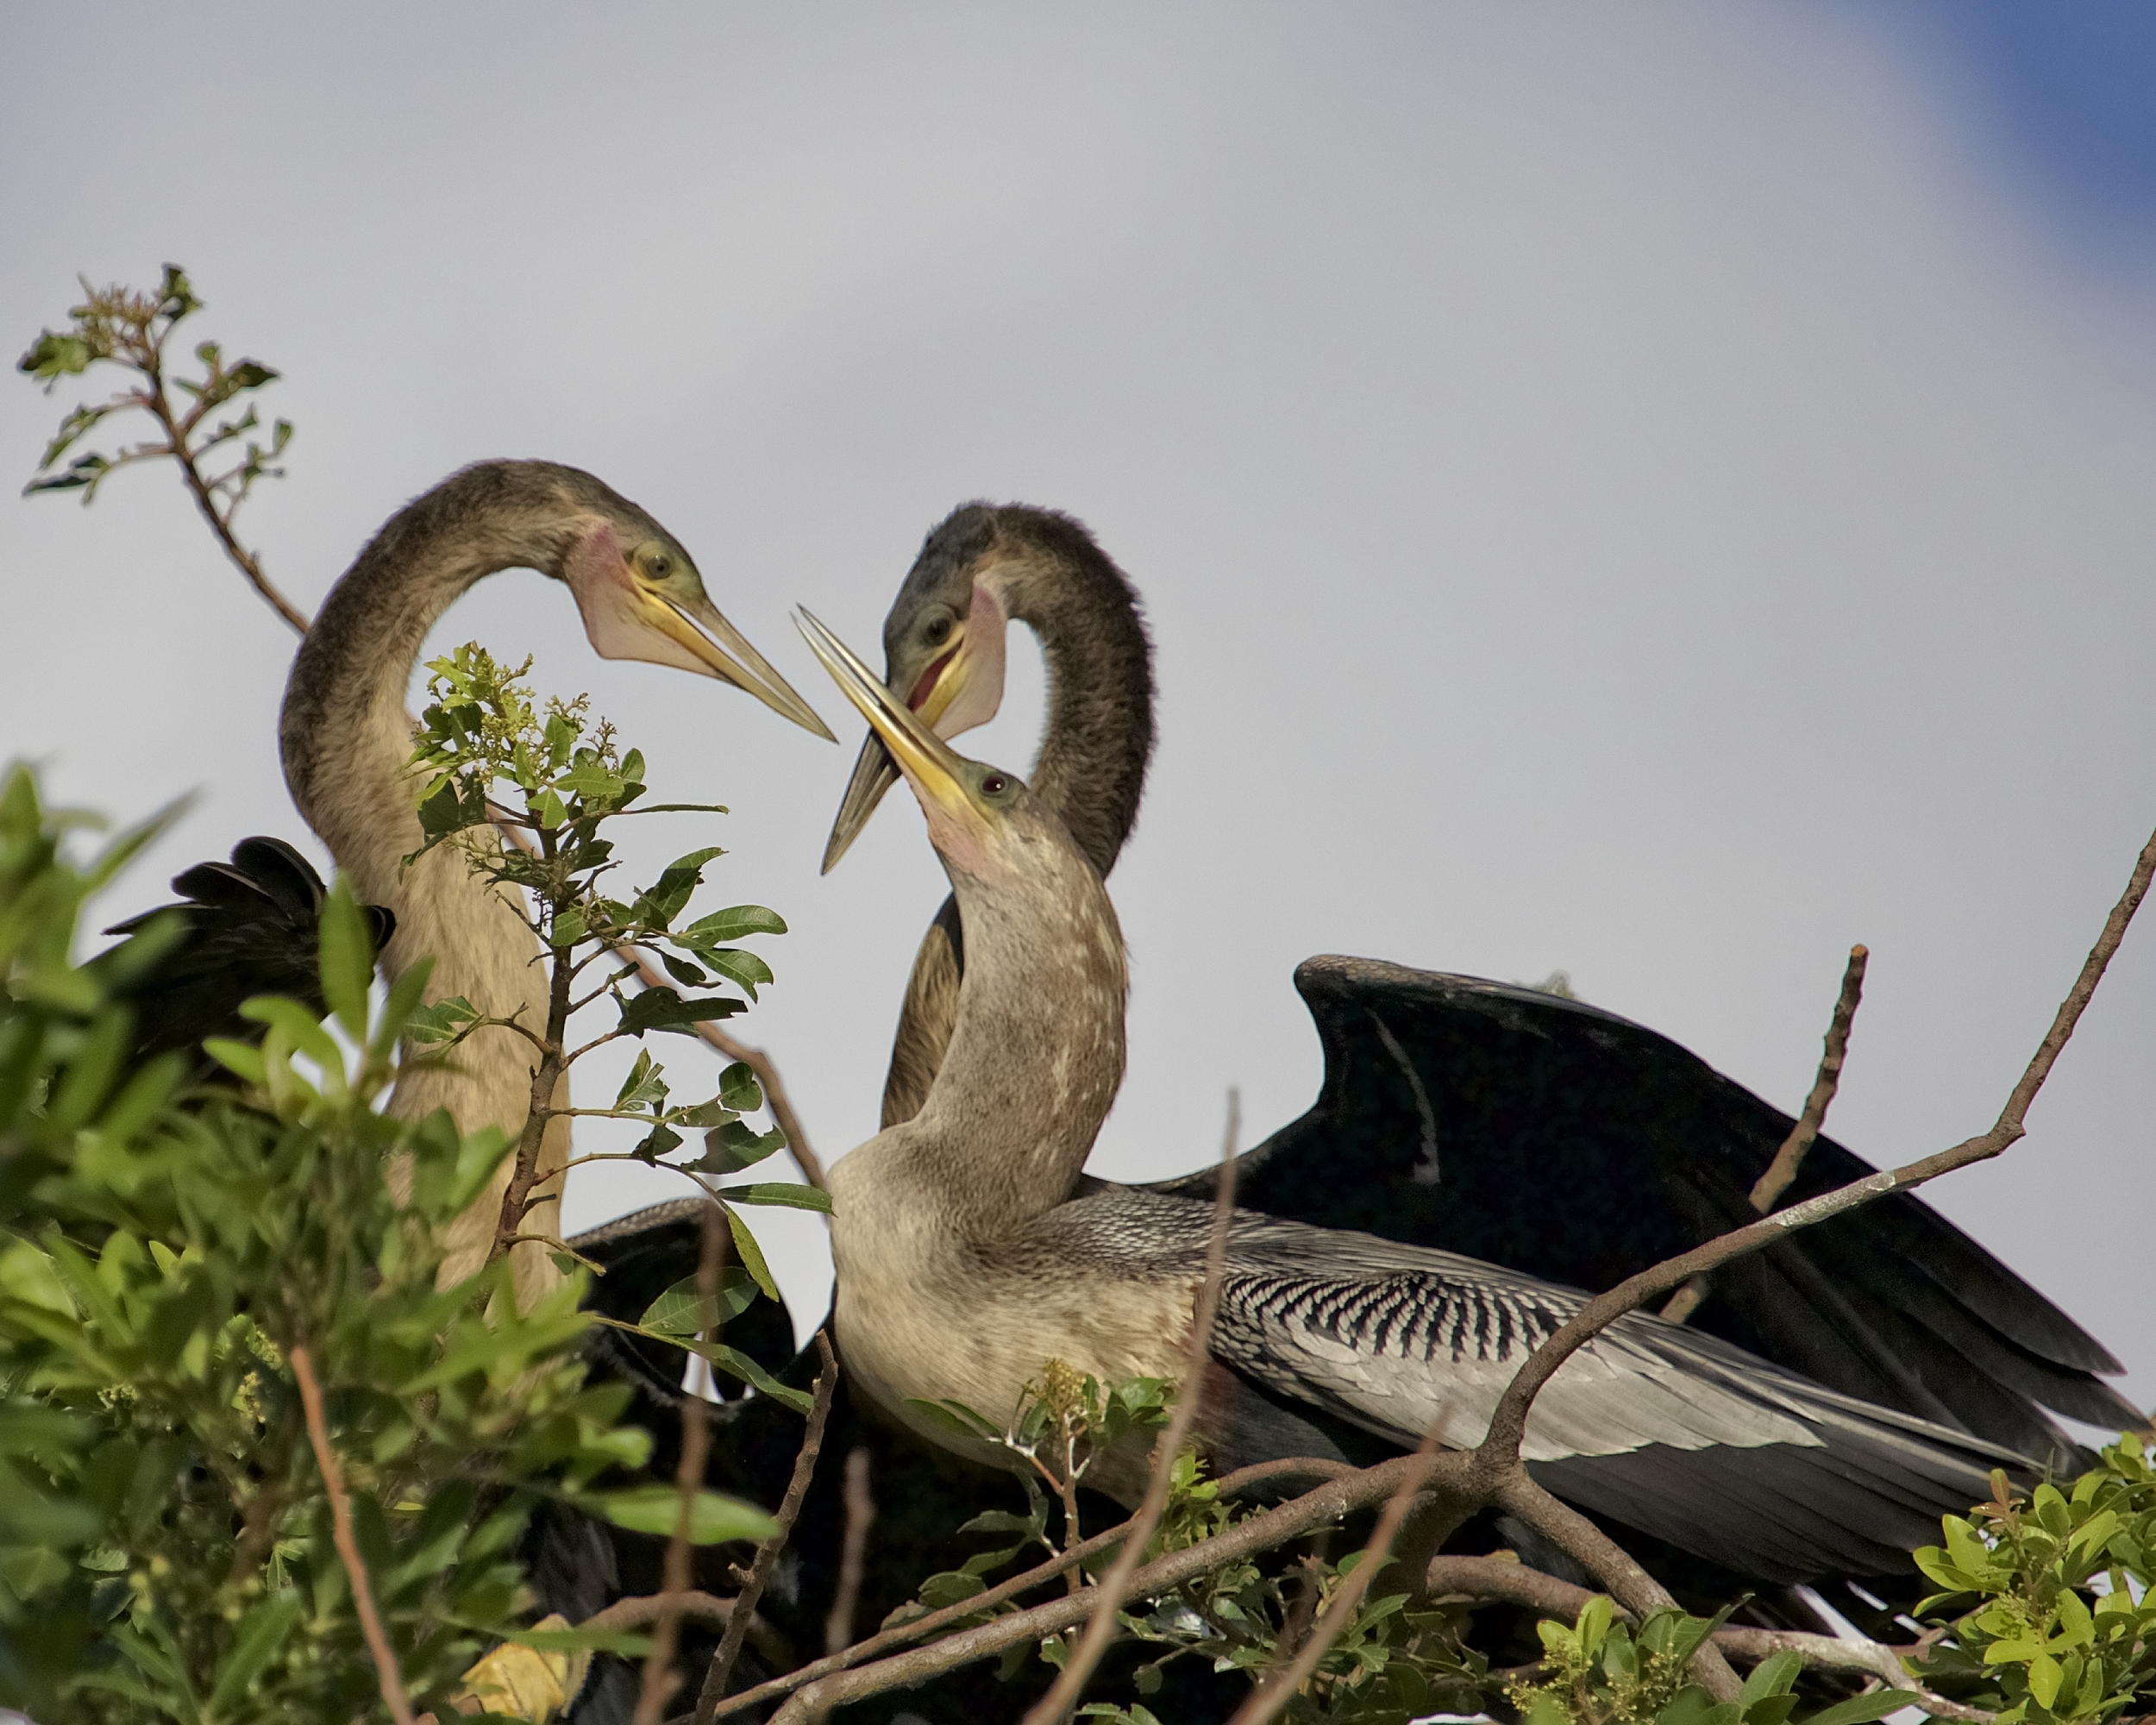 Some fledglings like this Anhinga seem reluctant to leave the nest no matter what the parents say. Why leave free room and board..sound familiar?